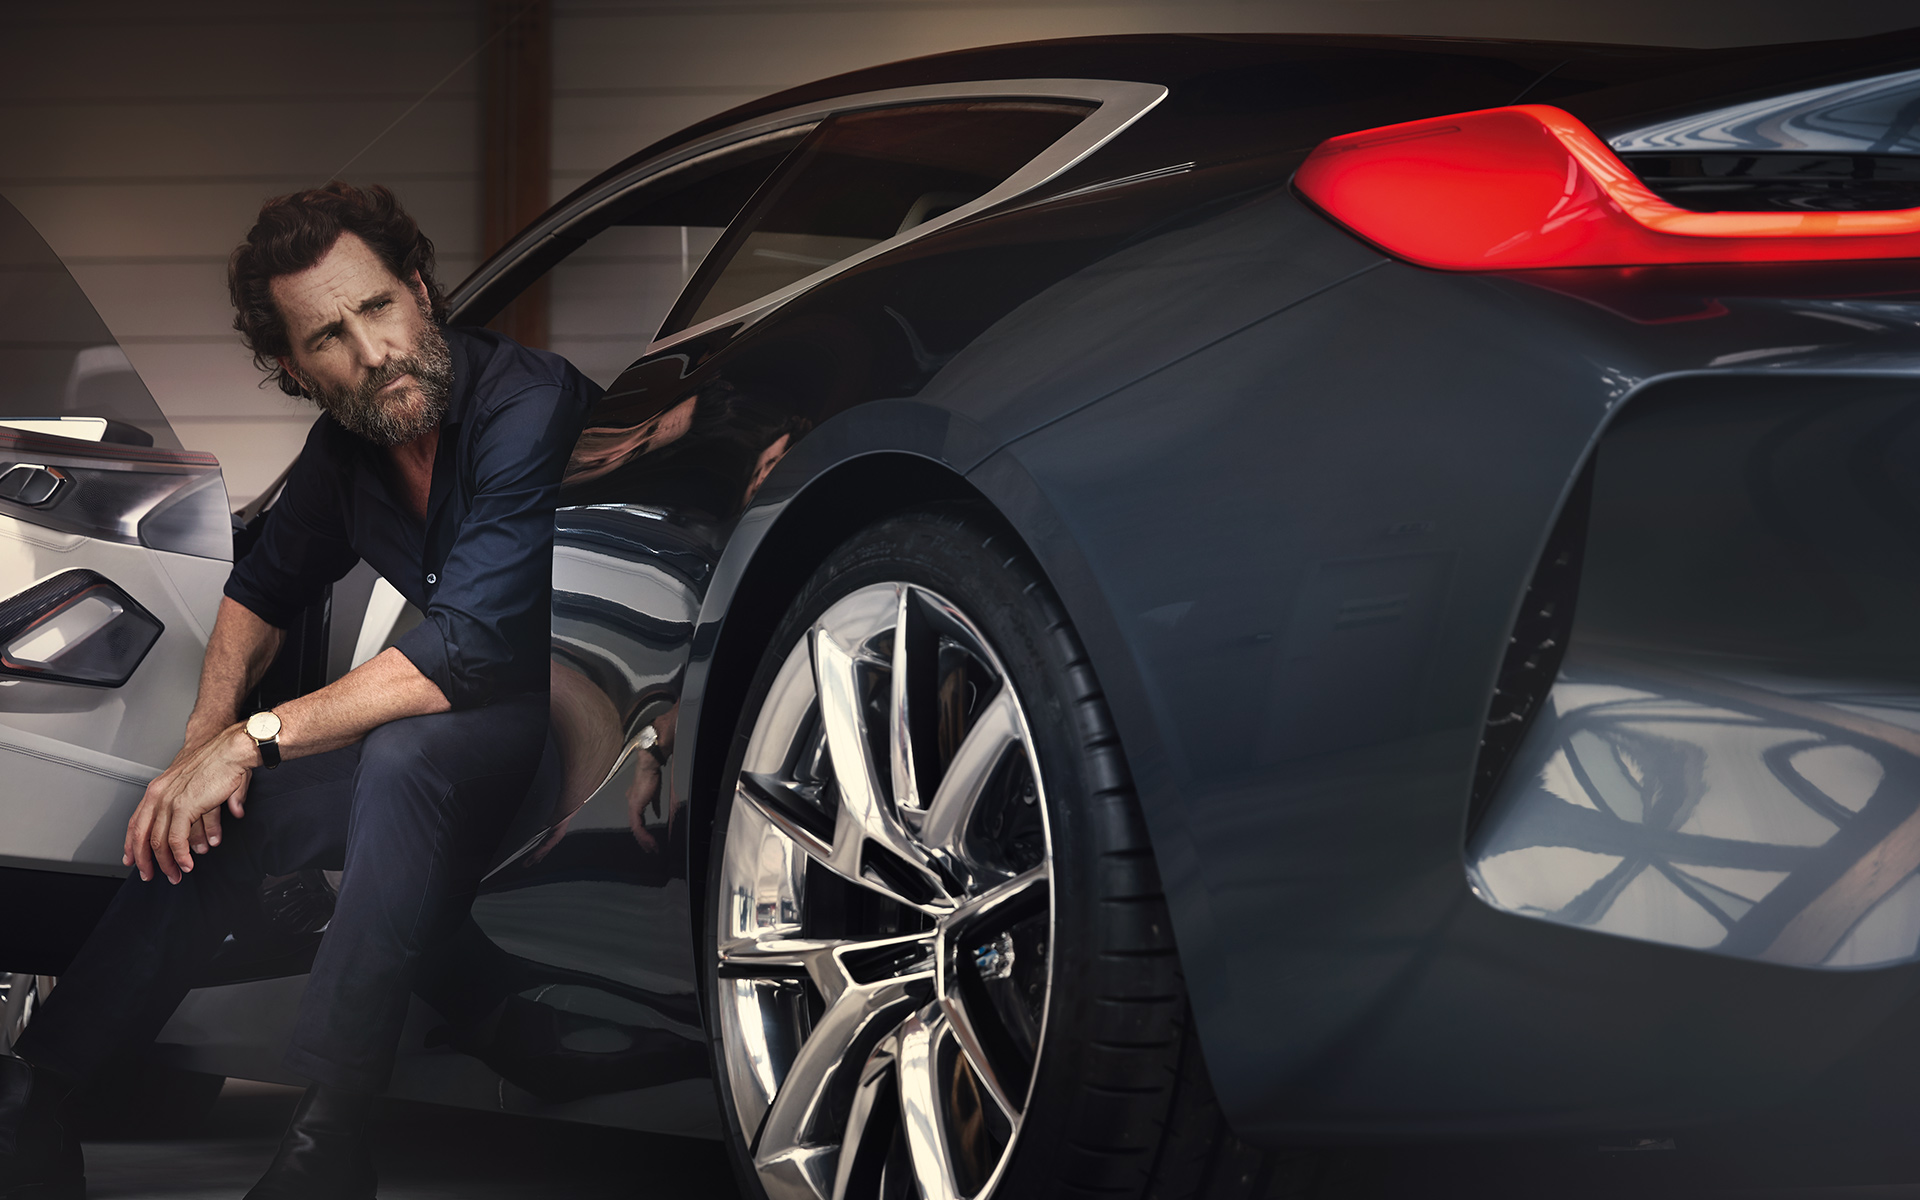 BMW 8 Series Coupe: elegant man sitting inside the black vehicle.